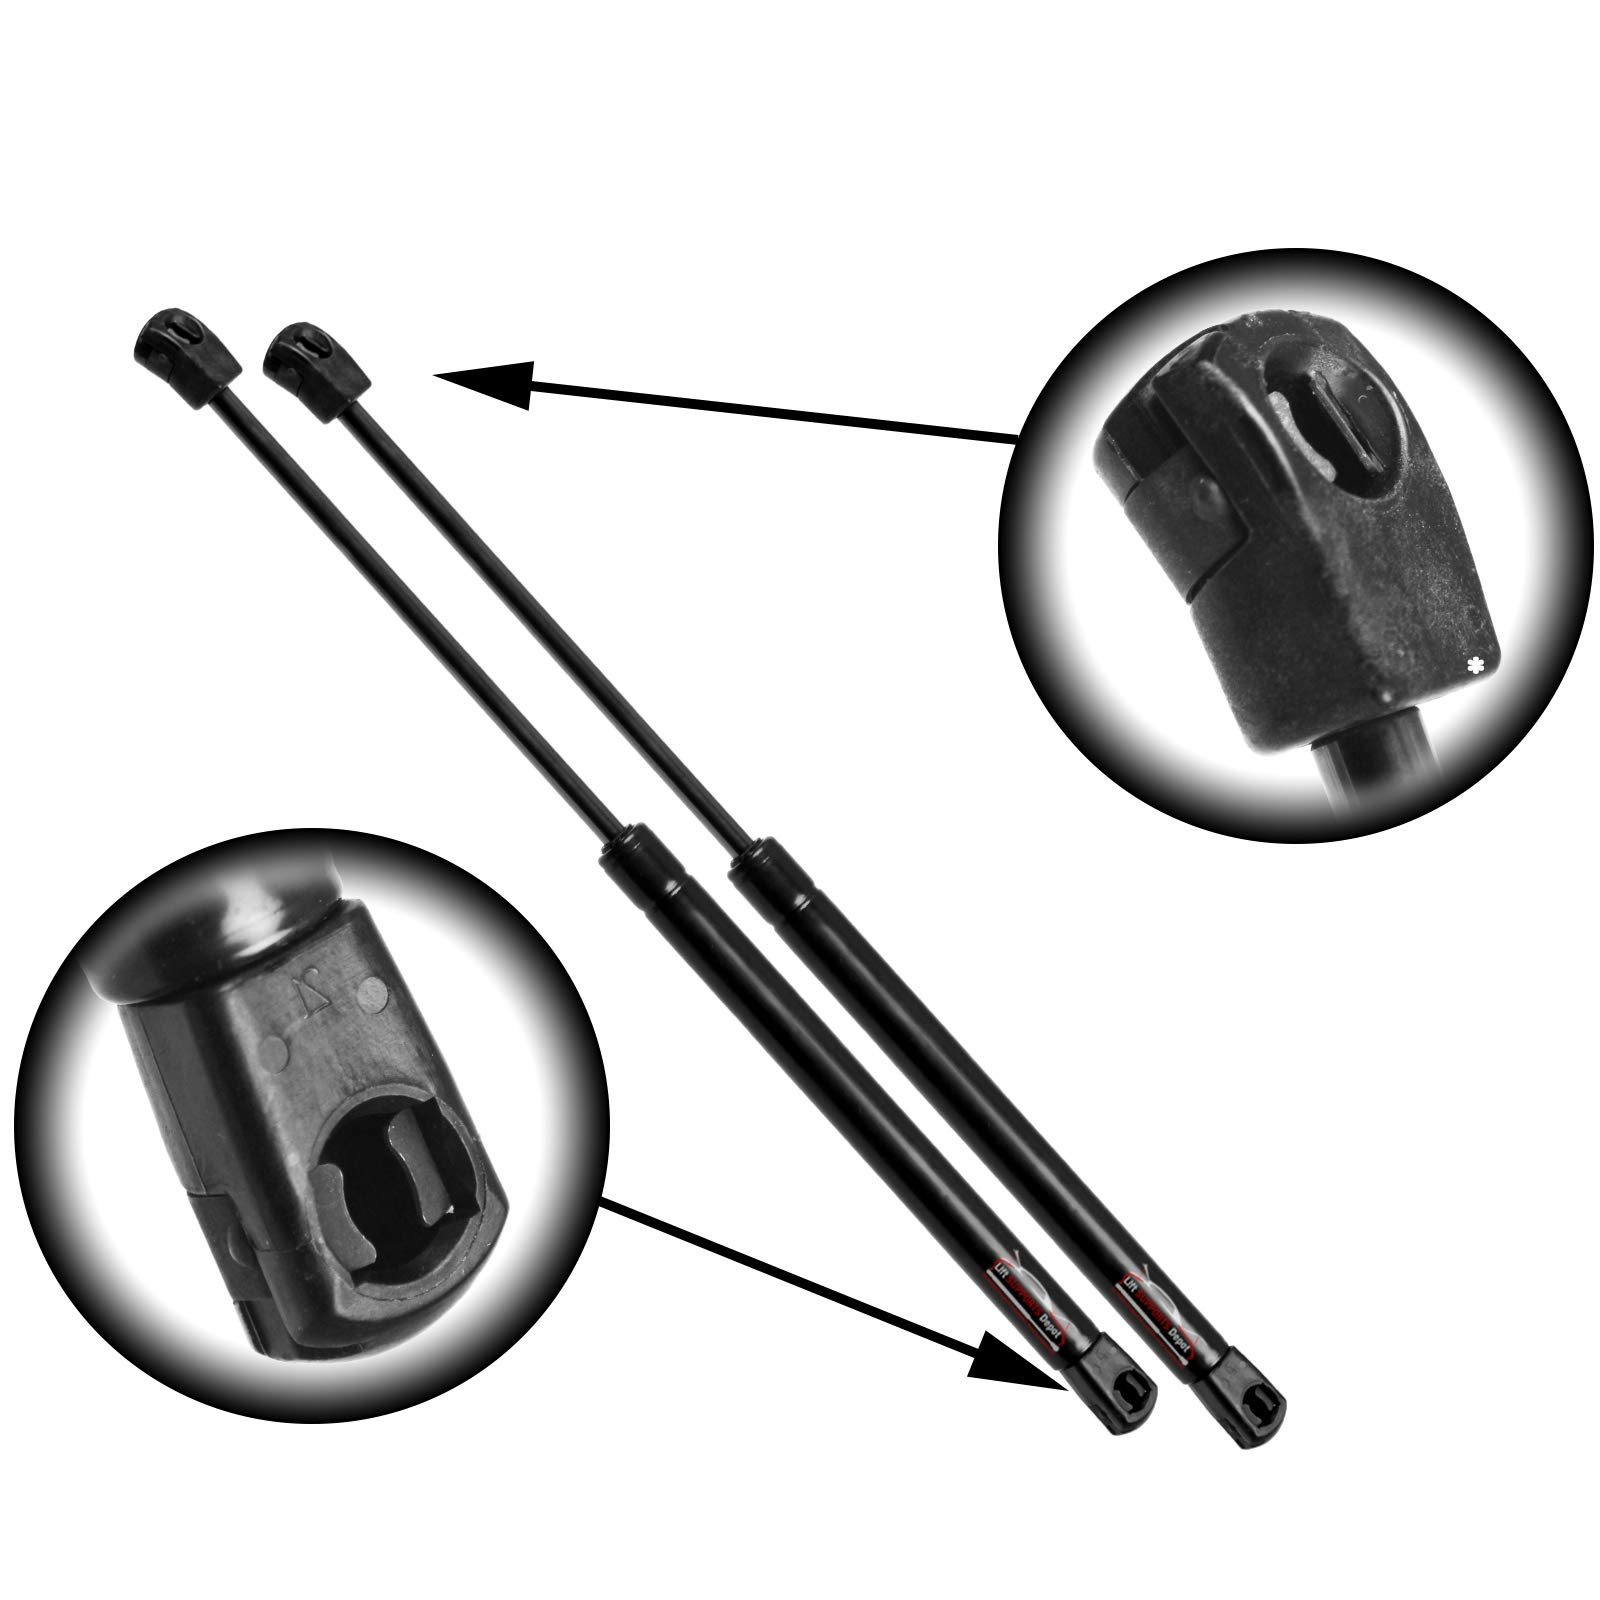 LSC-0366-B-2 Lift Support Central Left and Right Side Two Rear Hatch Gas Charged Lift Supports for 2012-2017 Hyundai Veloster